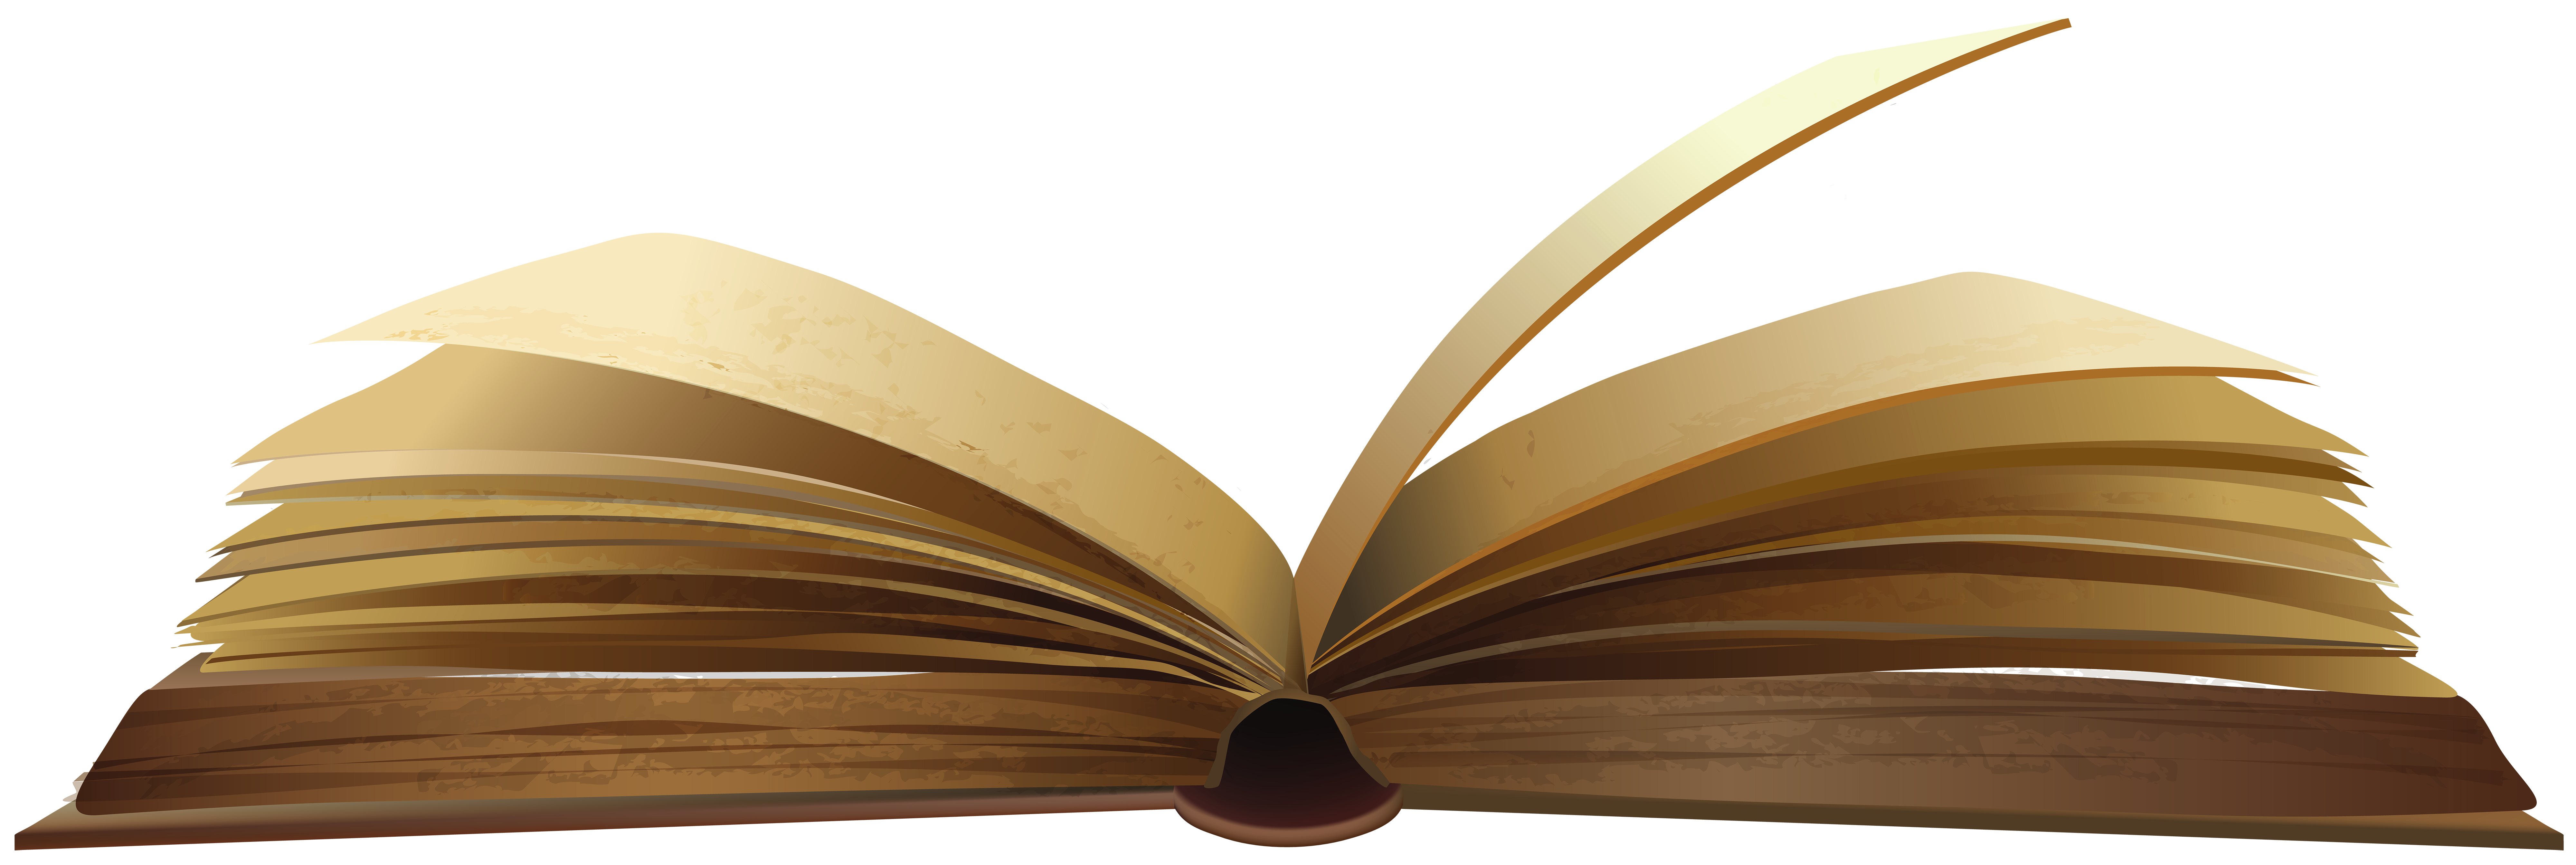 Old book png.